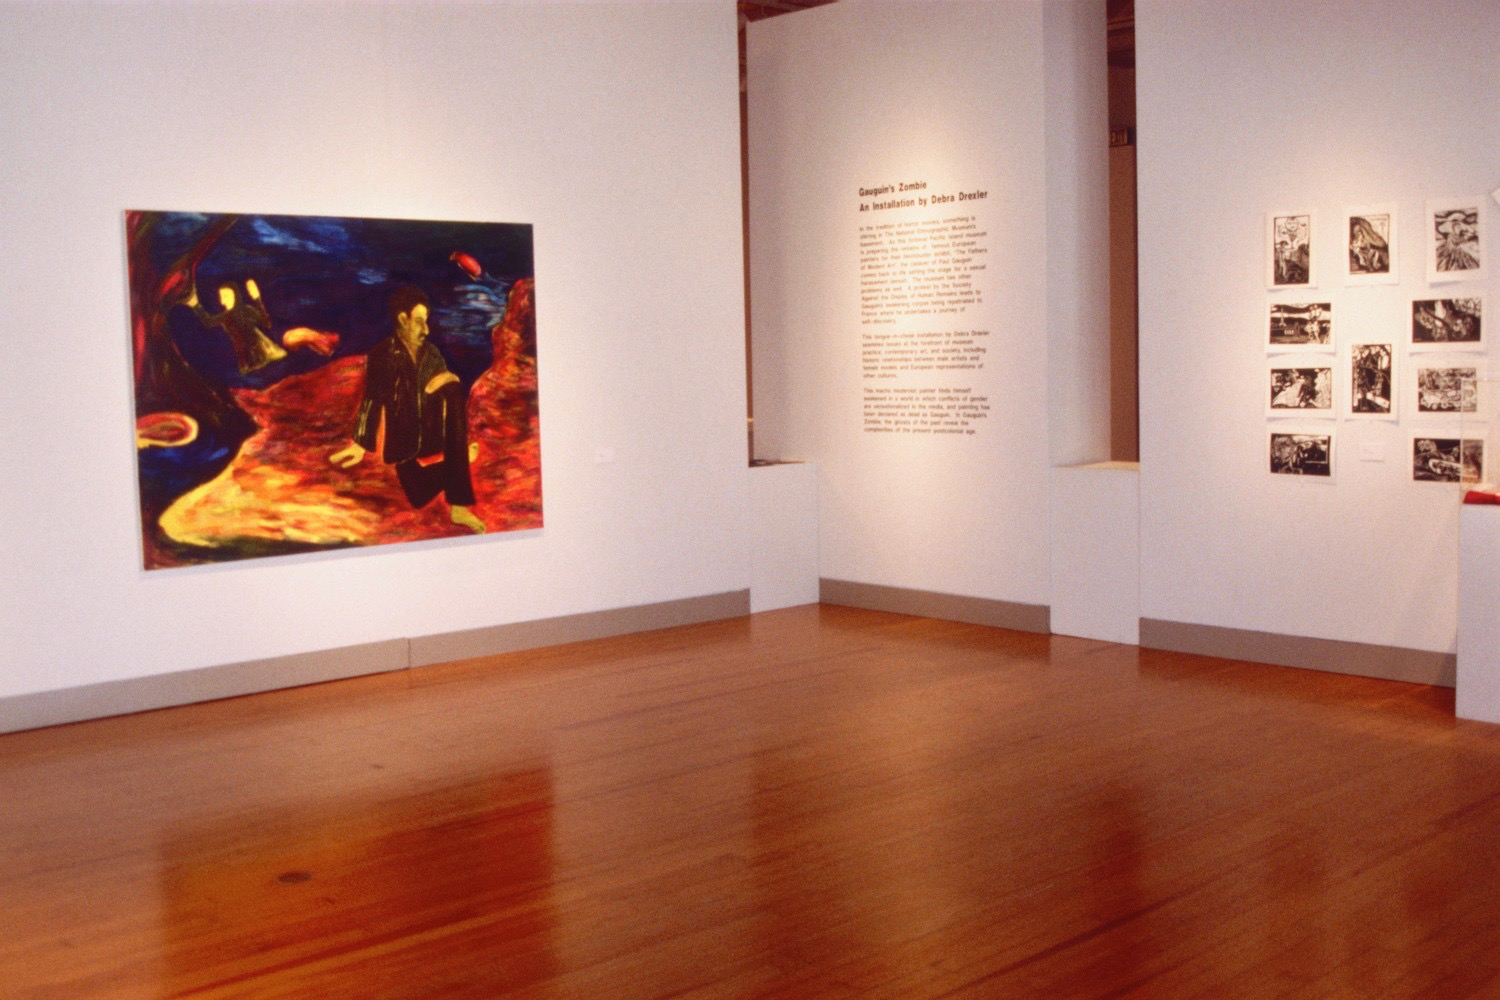 Gauguin's Zombie - Maui Arts and Cultural Center